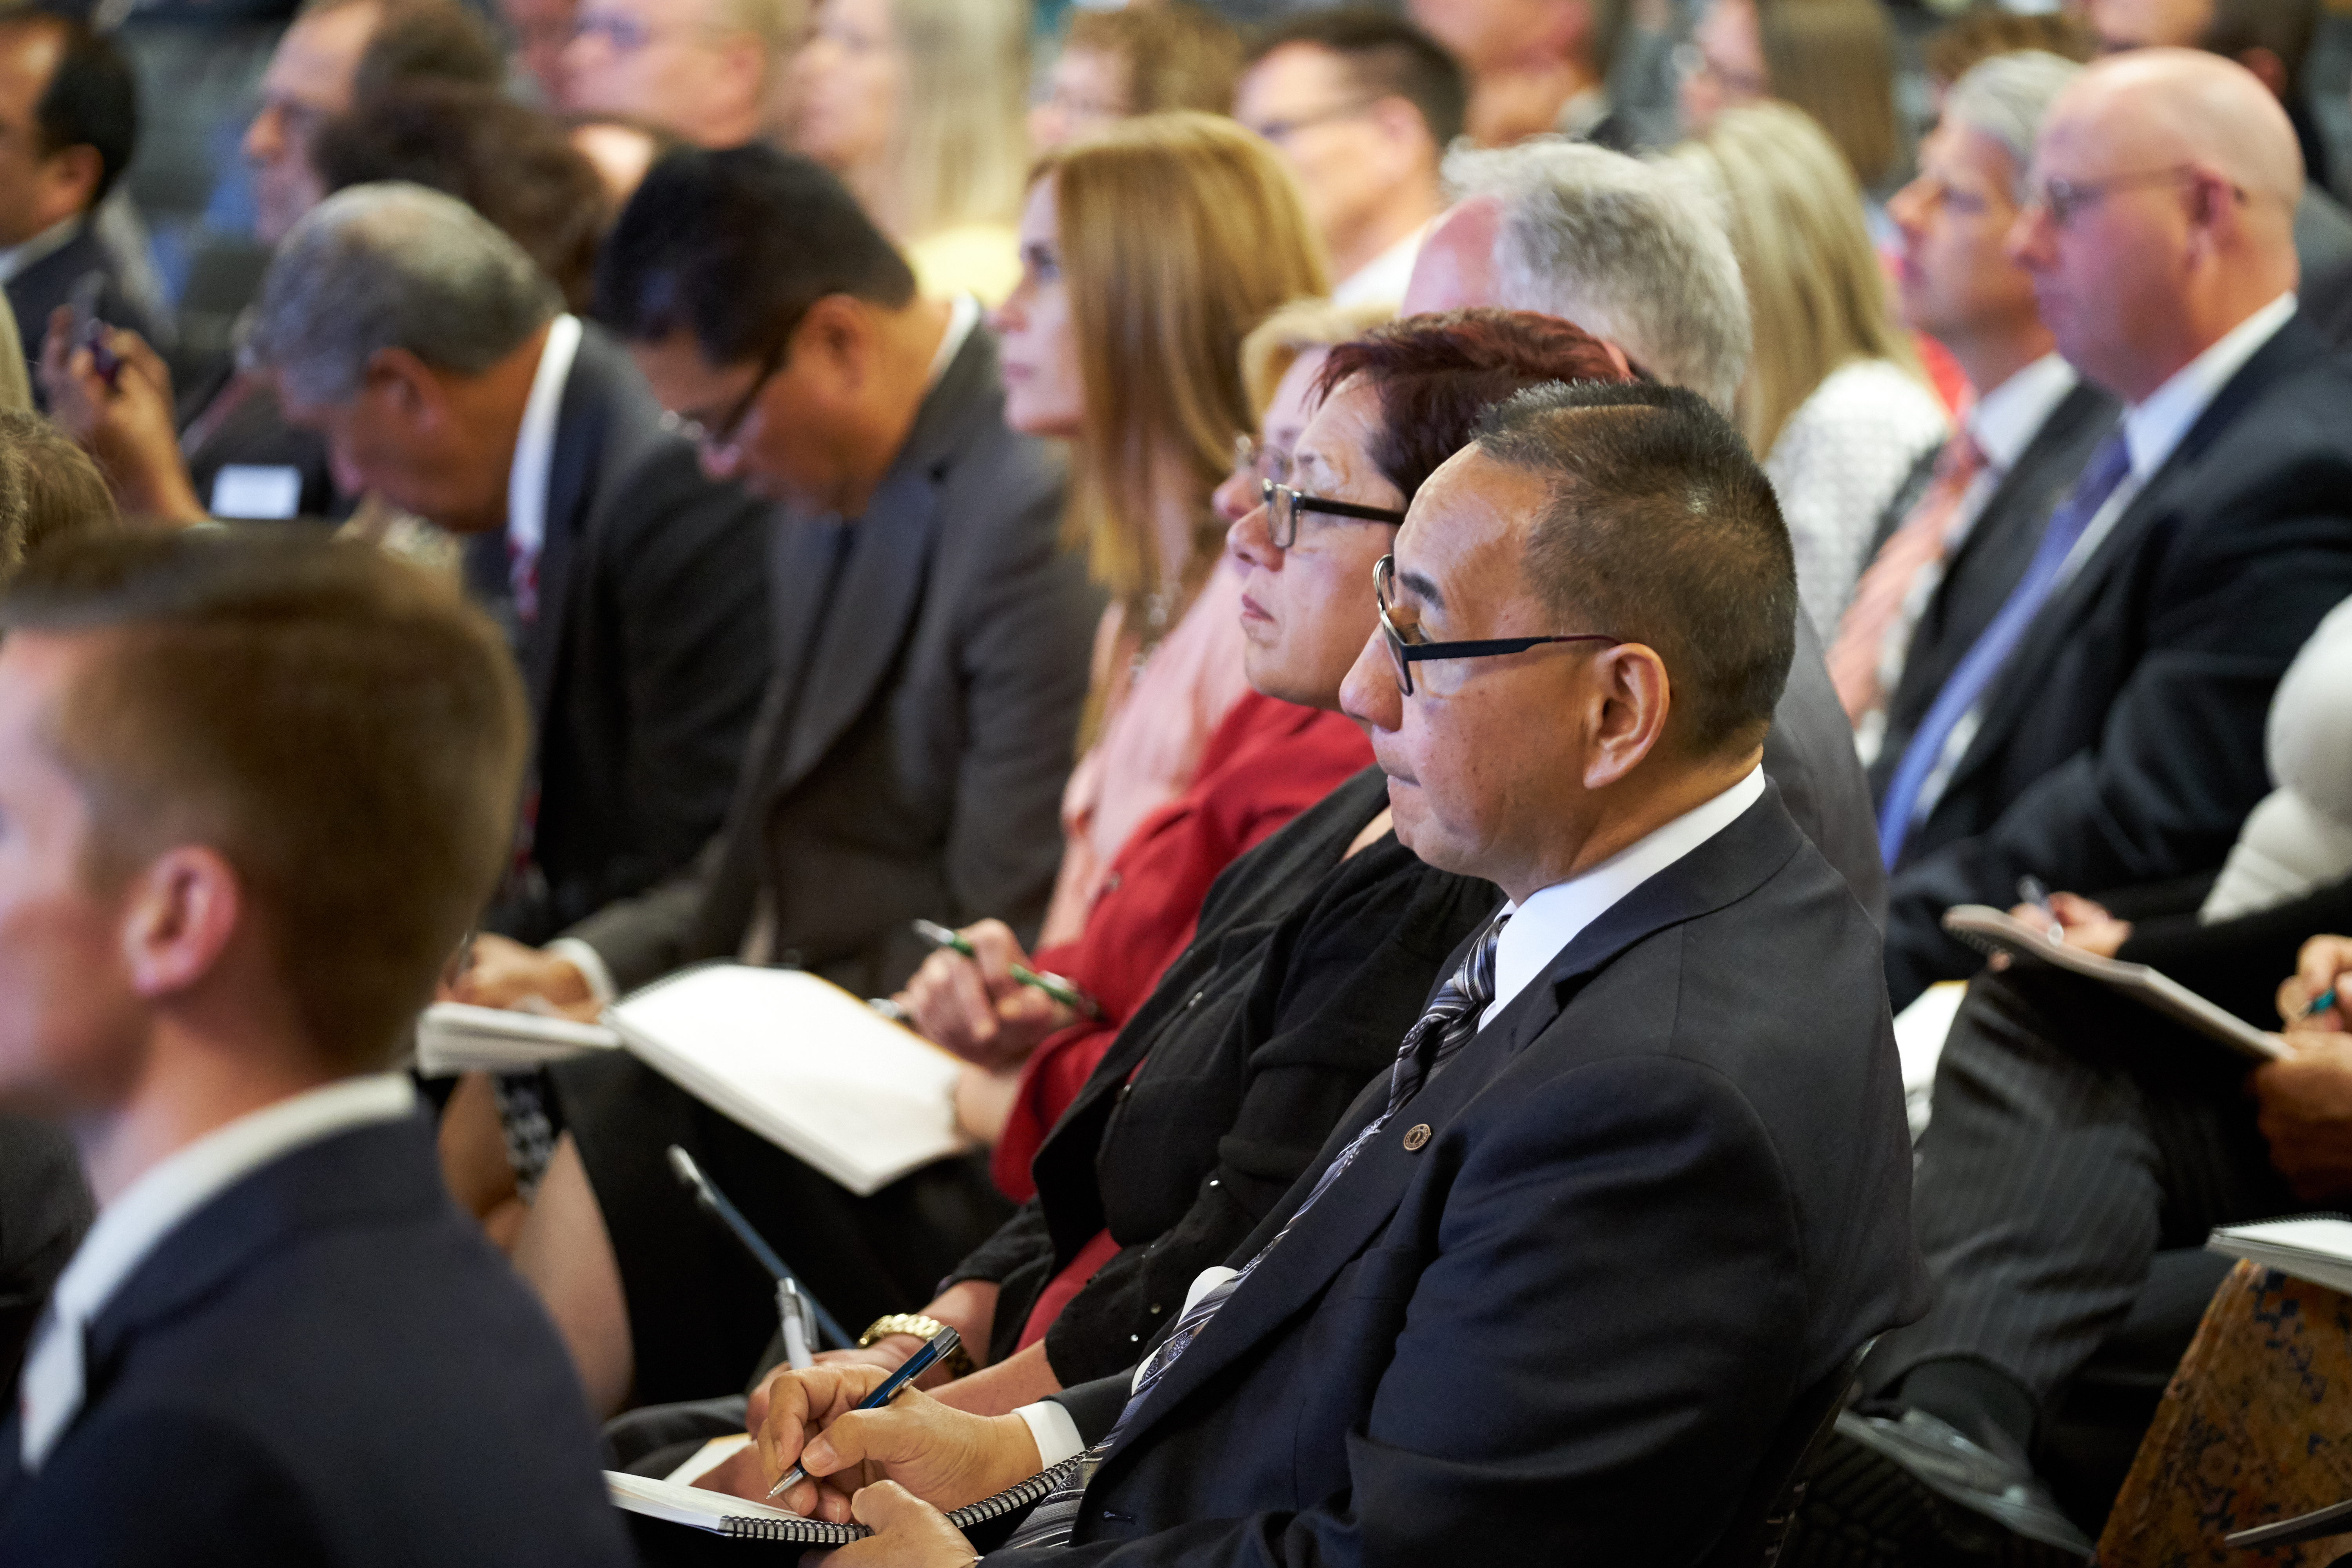 Mission president and their companions listen to a session during the 2018 Mission Leadership Seminar at the Provo Missionary Training Center on June 24-26.